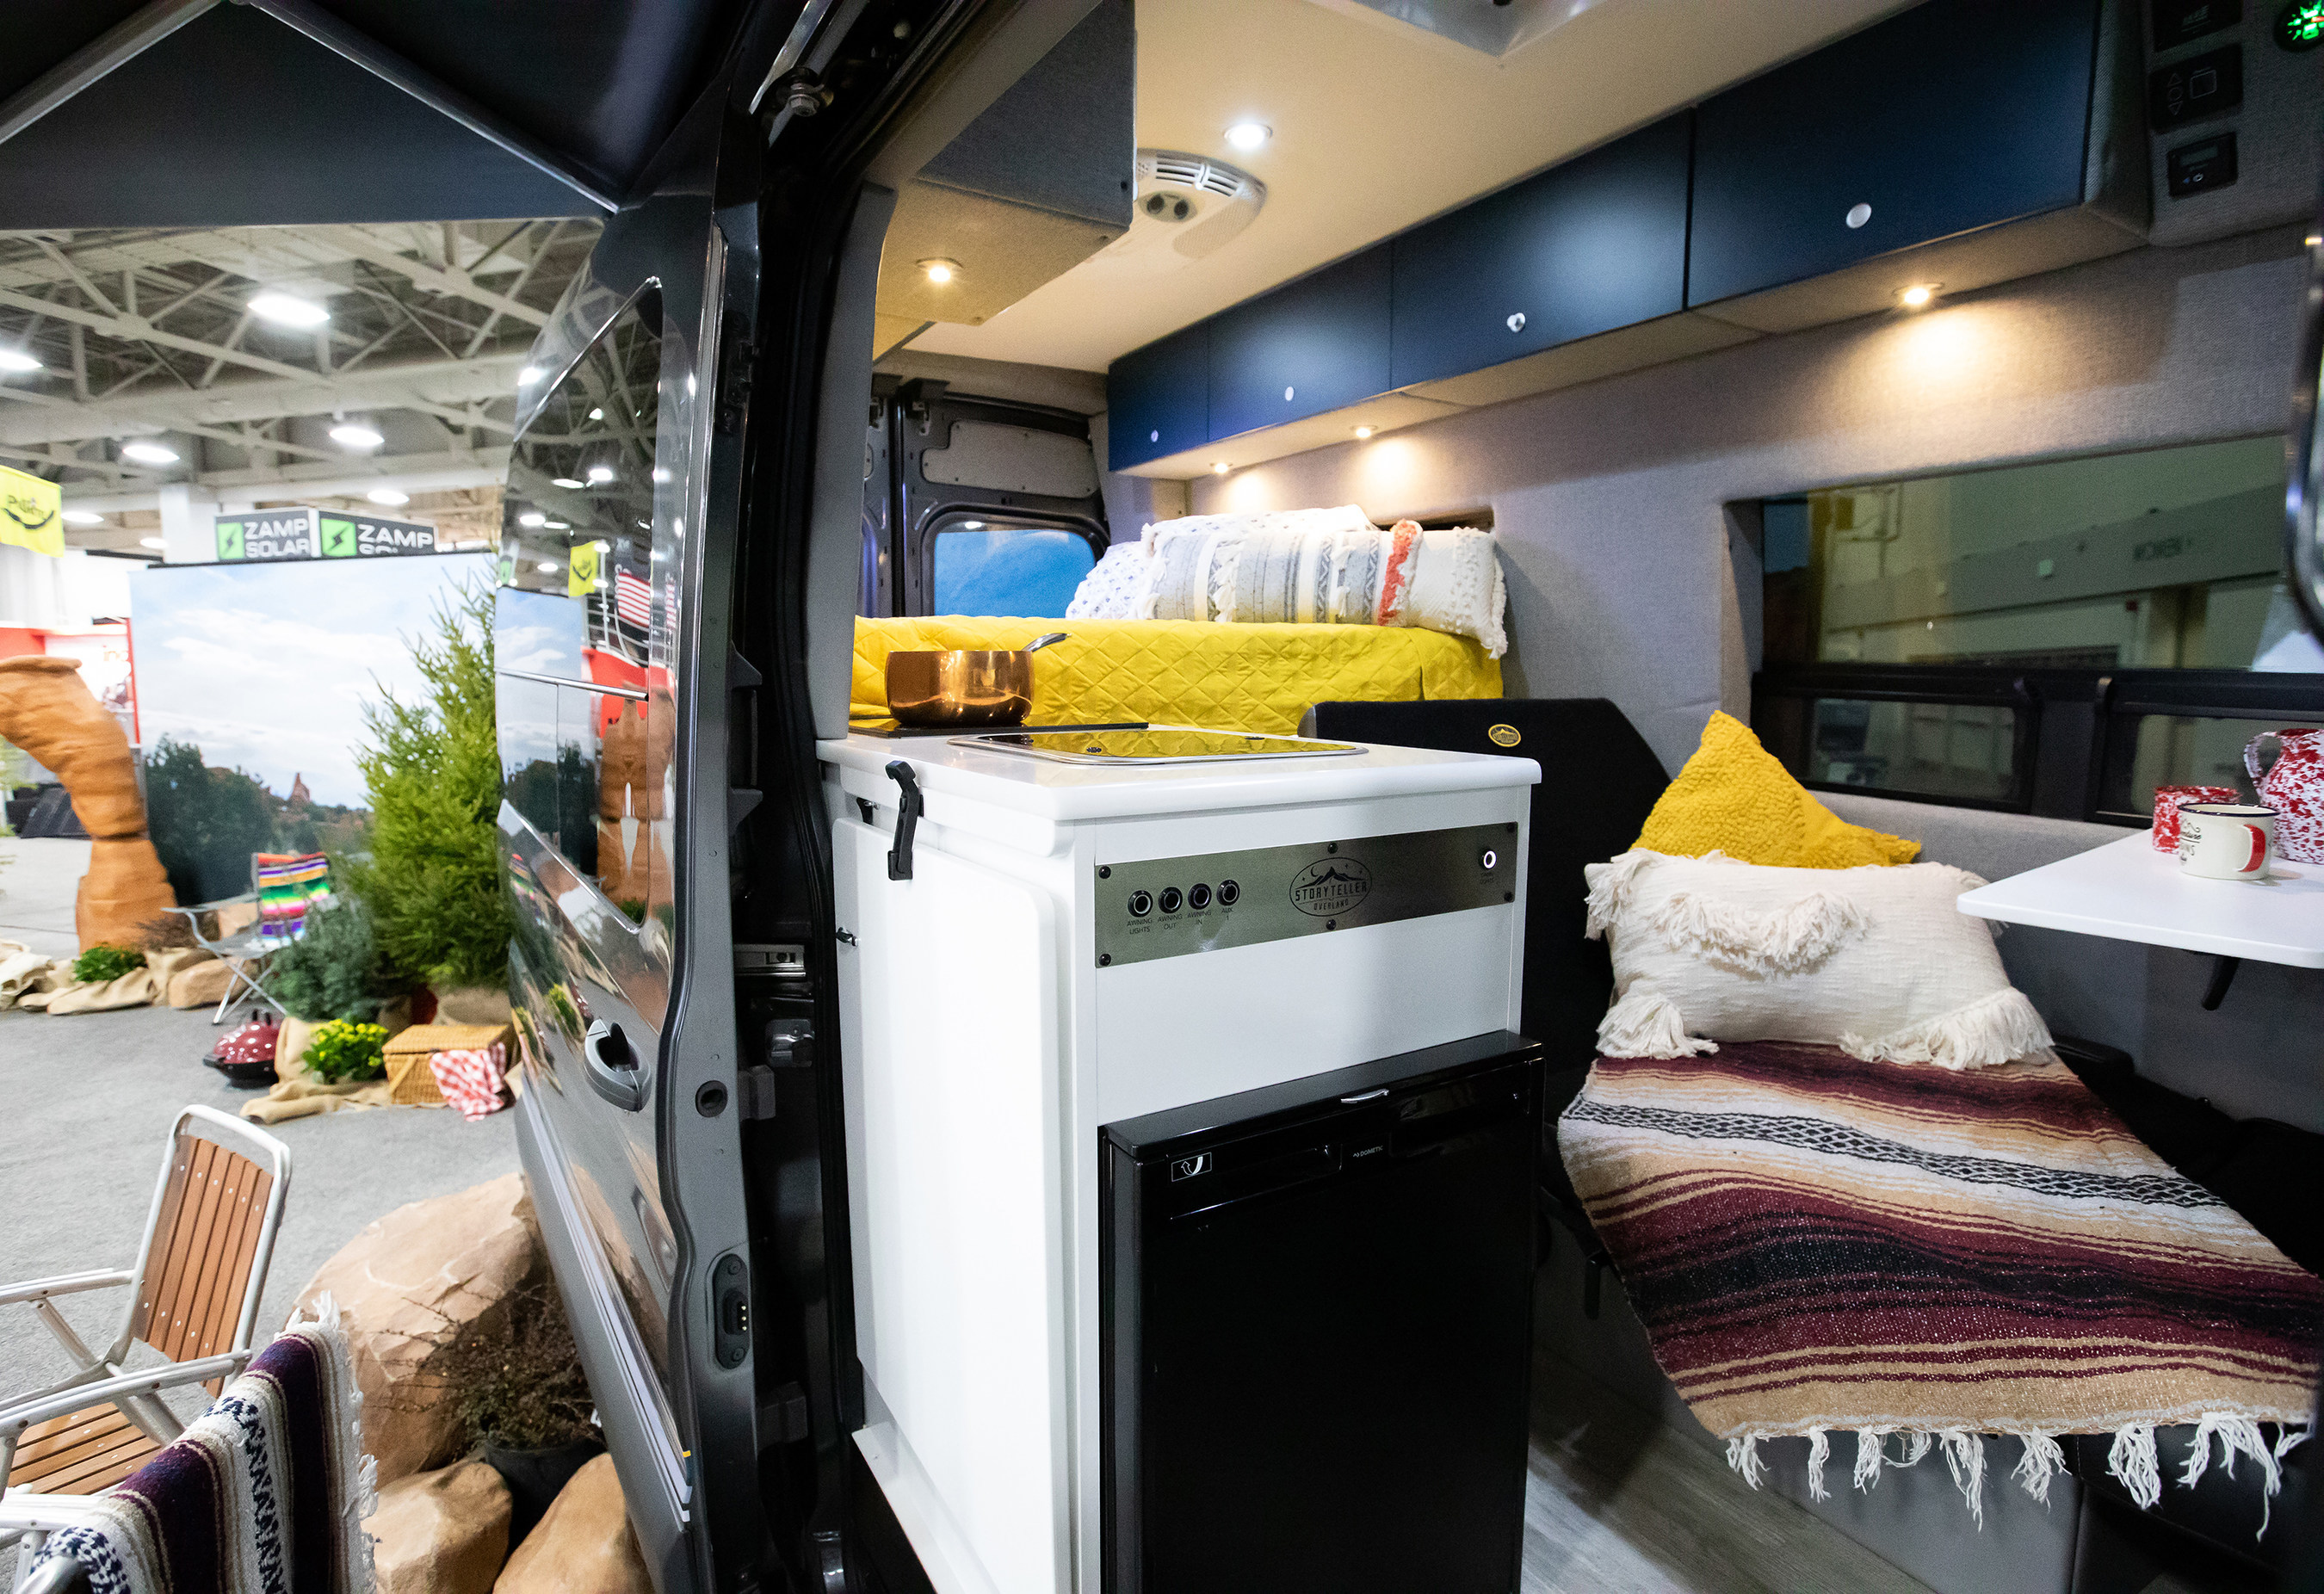 The interior of the all new Storyteller Overland MODE 4x4 shown here on the Ford Transit platform in the Van Life Vignette at the recent RVX Expo in Salt Lake City, Utah.